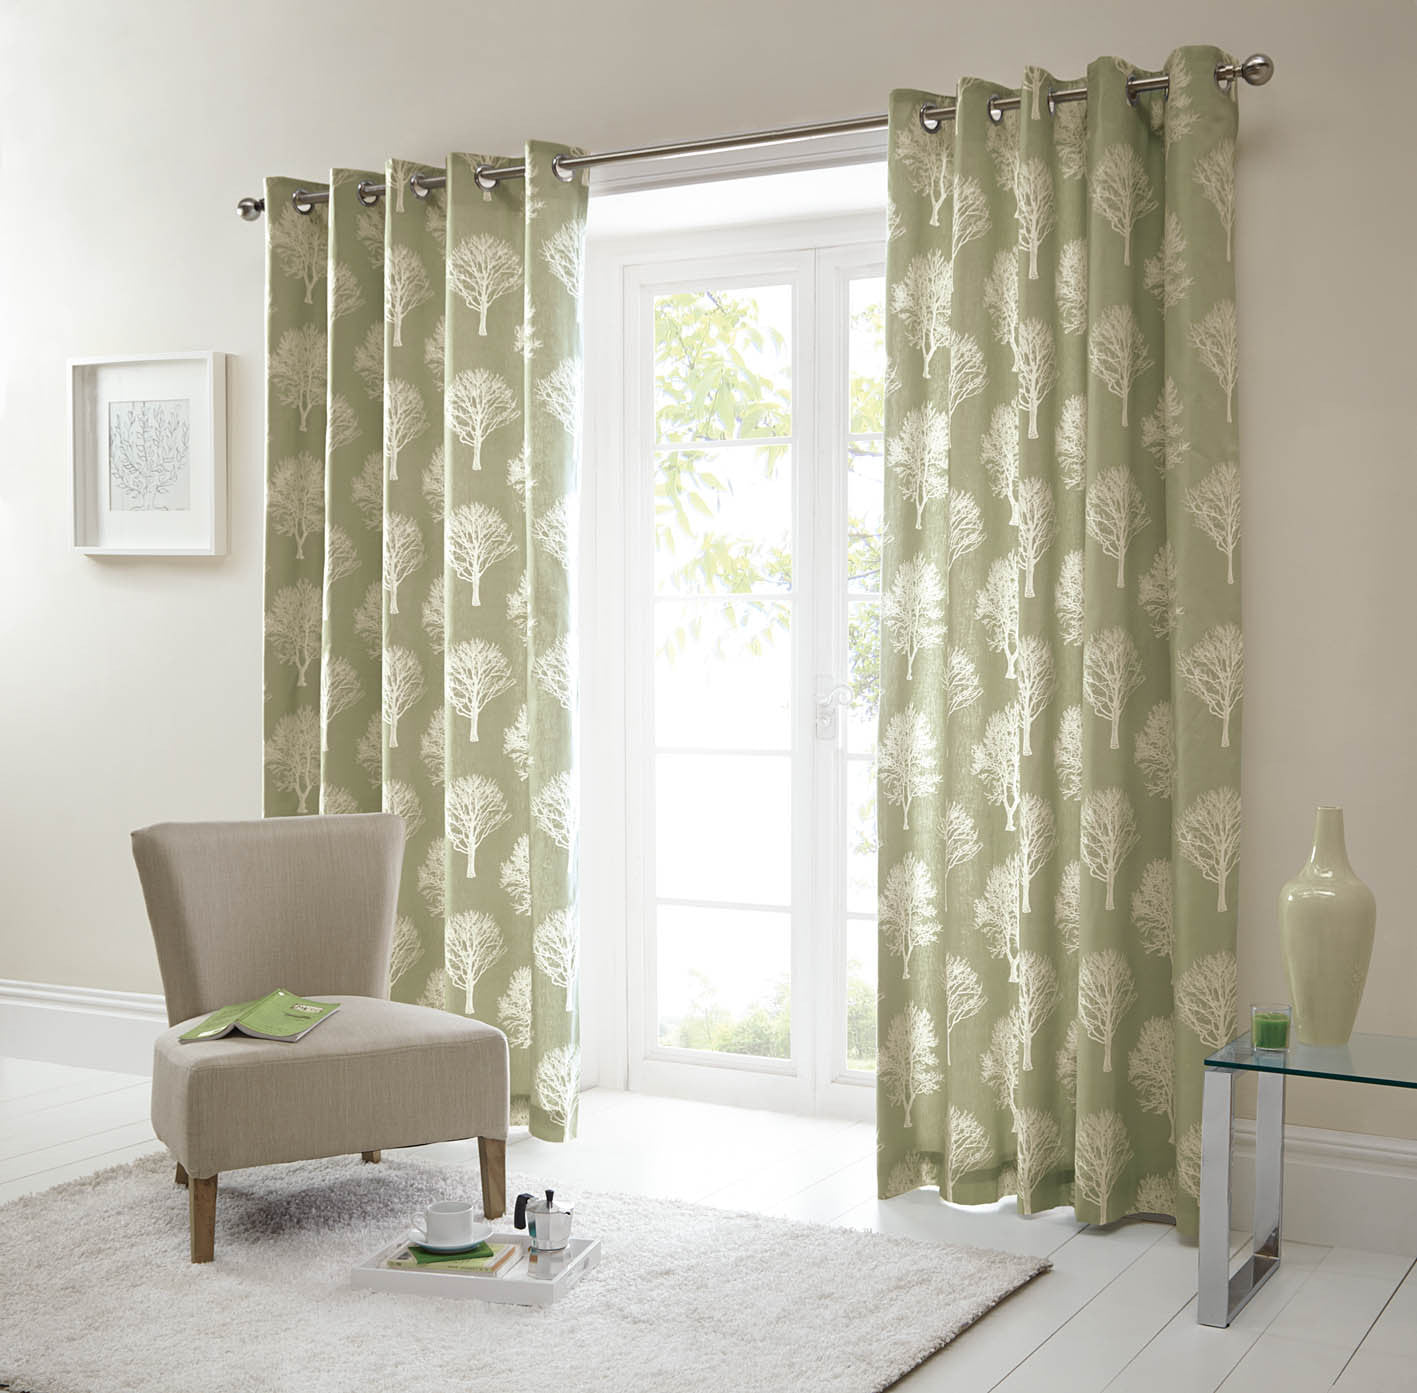 Pastel Trees Green 100% Cotton Curtains with Chrome Eyelet Tops